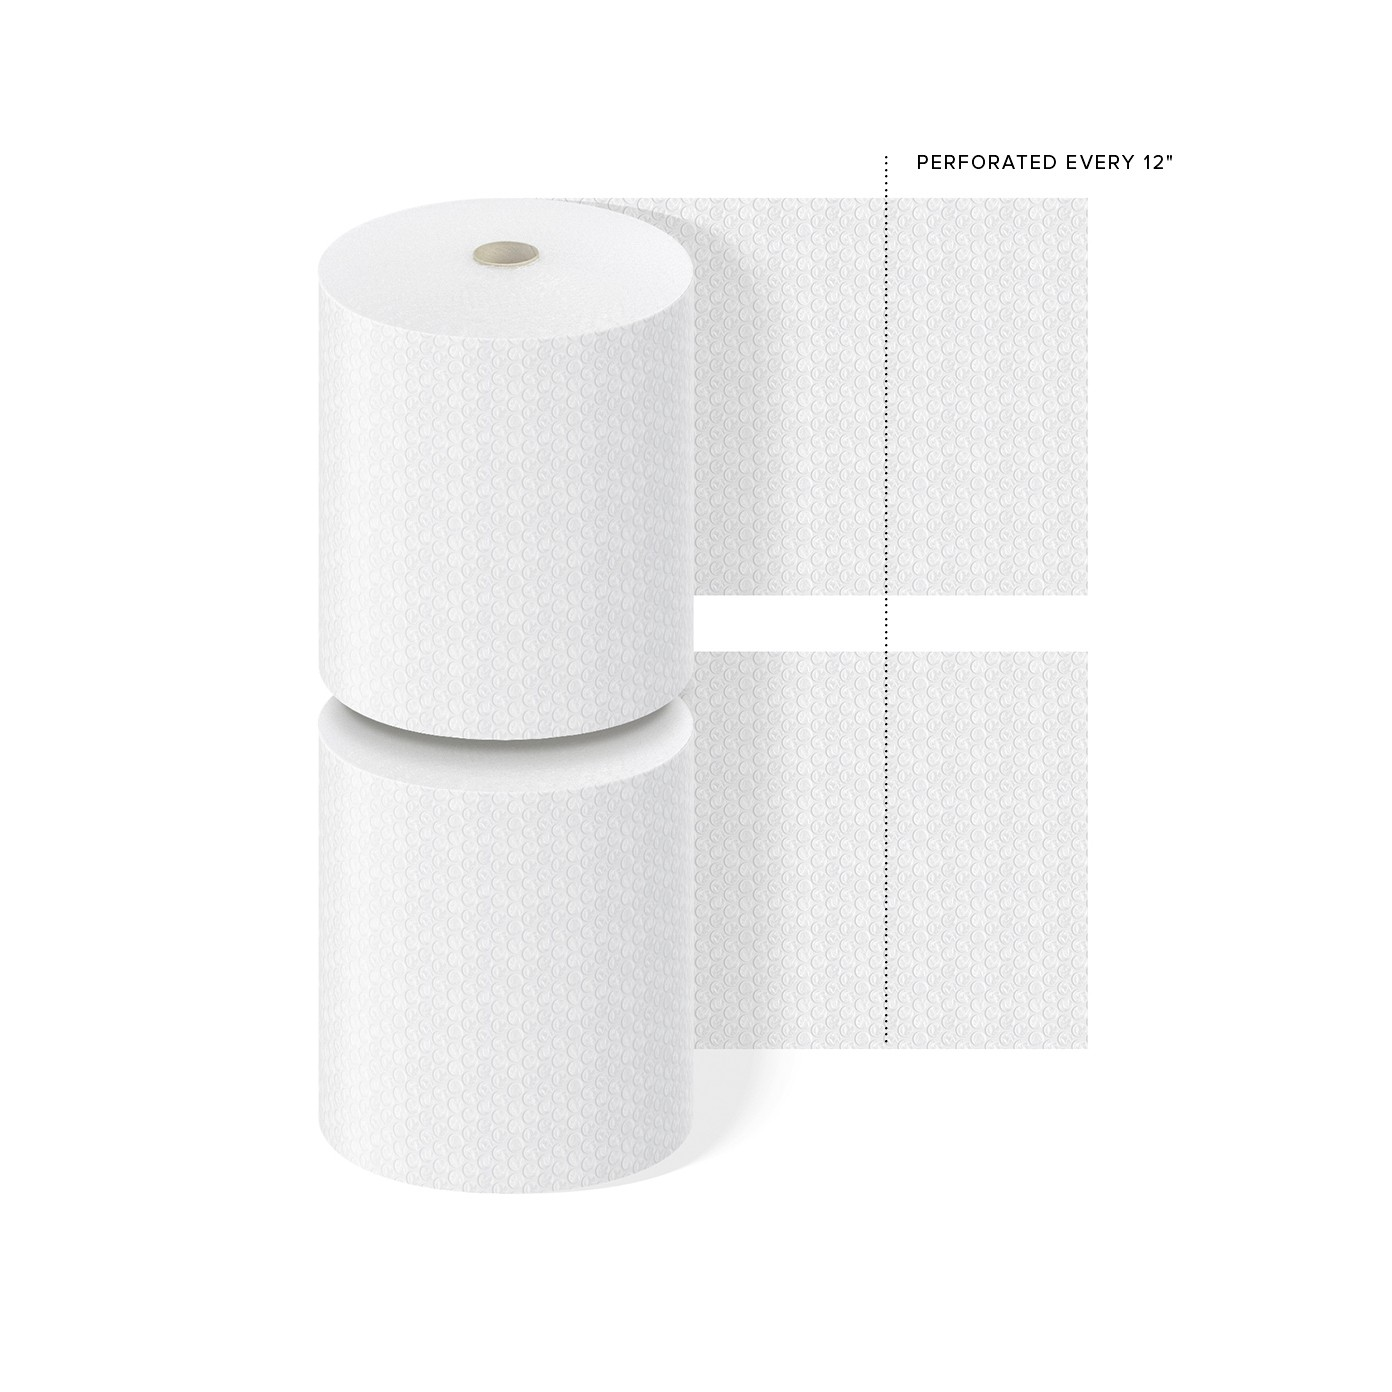 "TOTALPACK® 1/2"" x 24"" x 250' Perforated Every 12"", Air Bubble 2 Rolls"